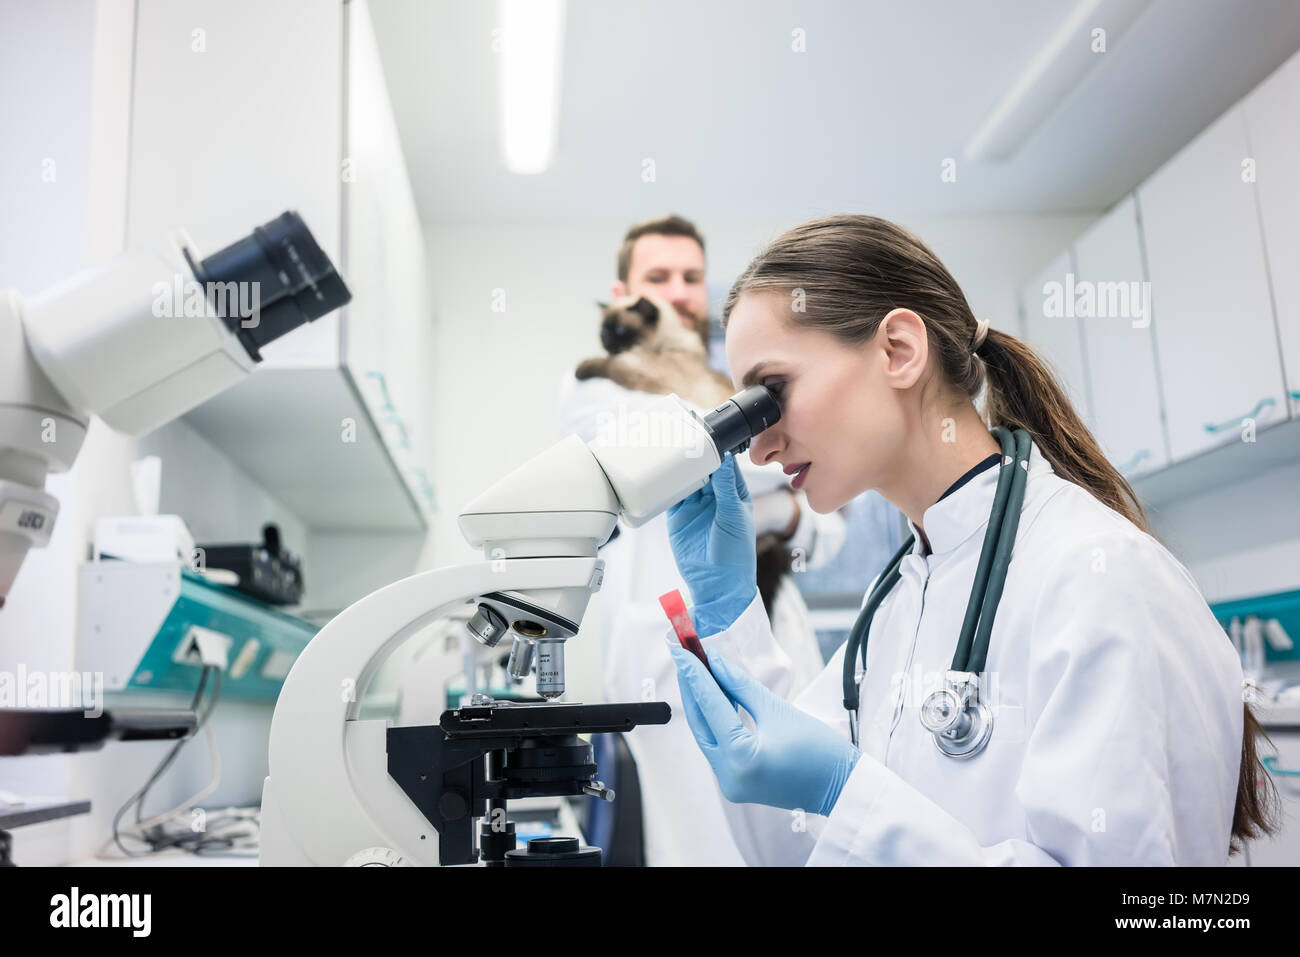 Lab assistant and veterinarian examining tissues sample from a cat - Stock Image